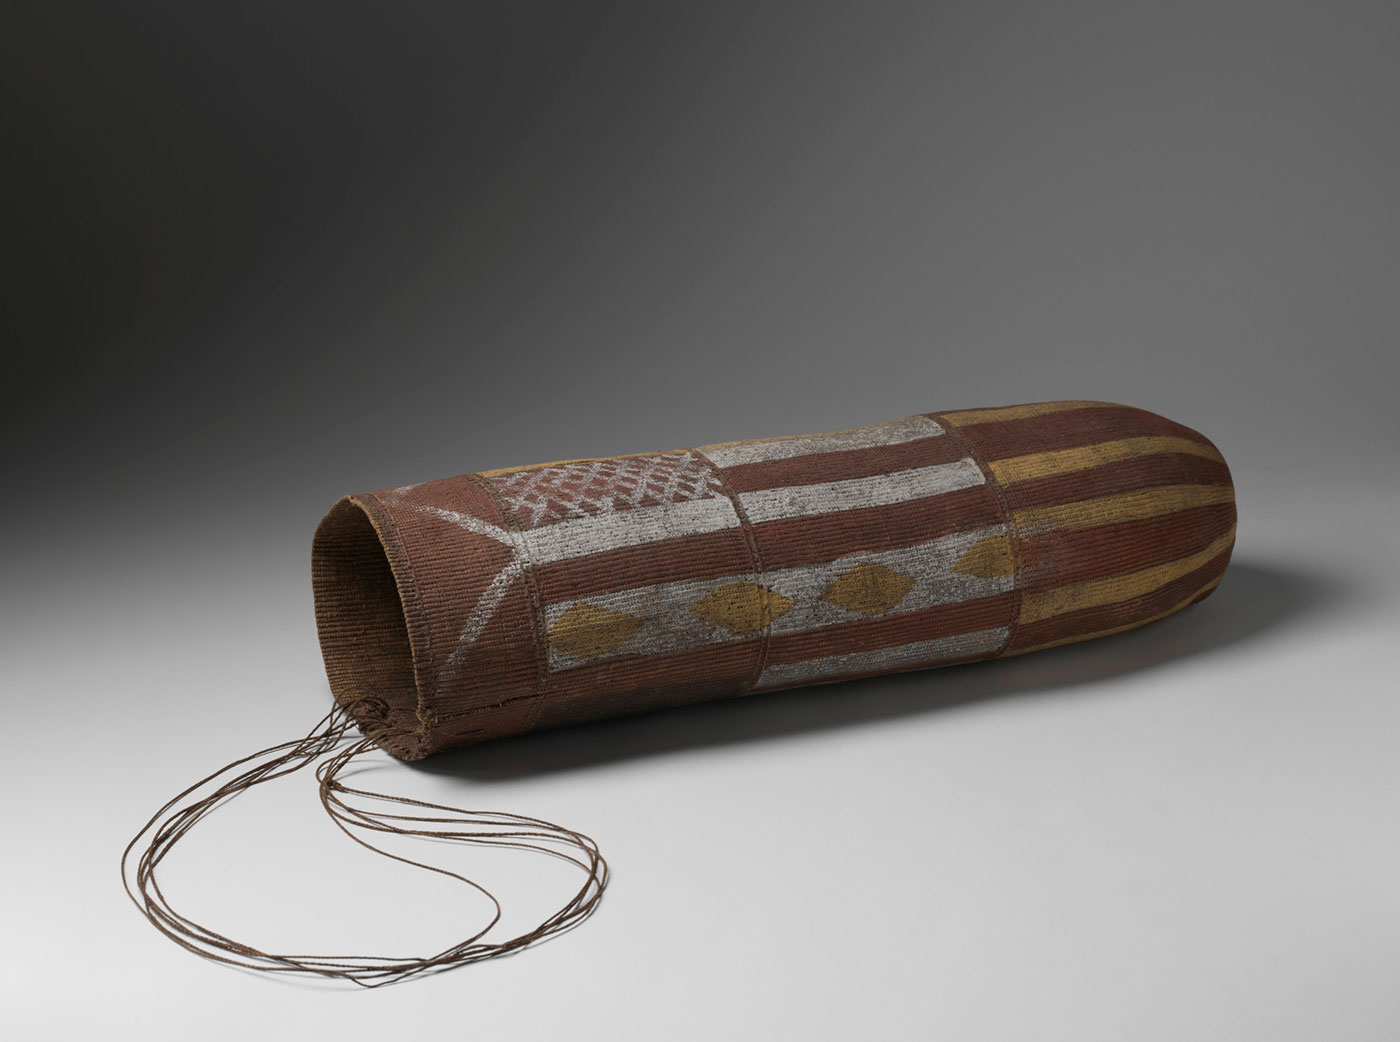 A cylindrical fibre basket with a string handle. The basket has been painted with ochre. - click to view larger image